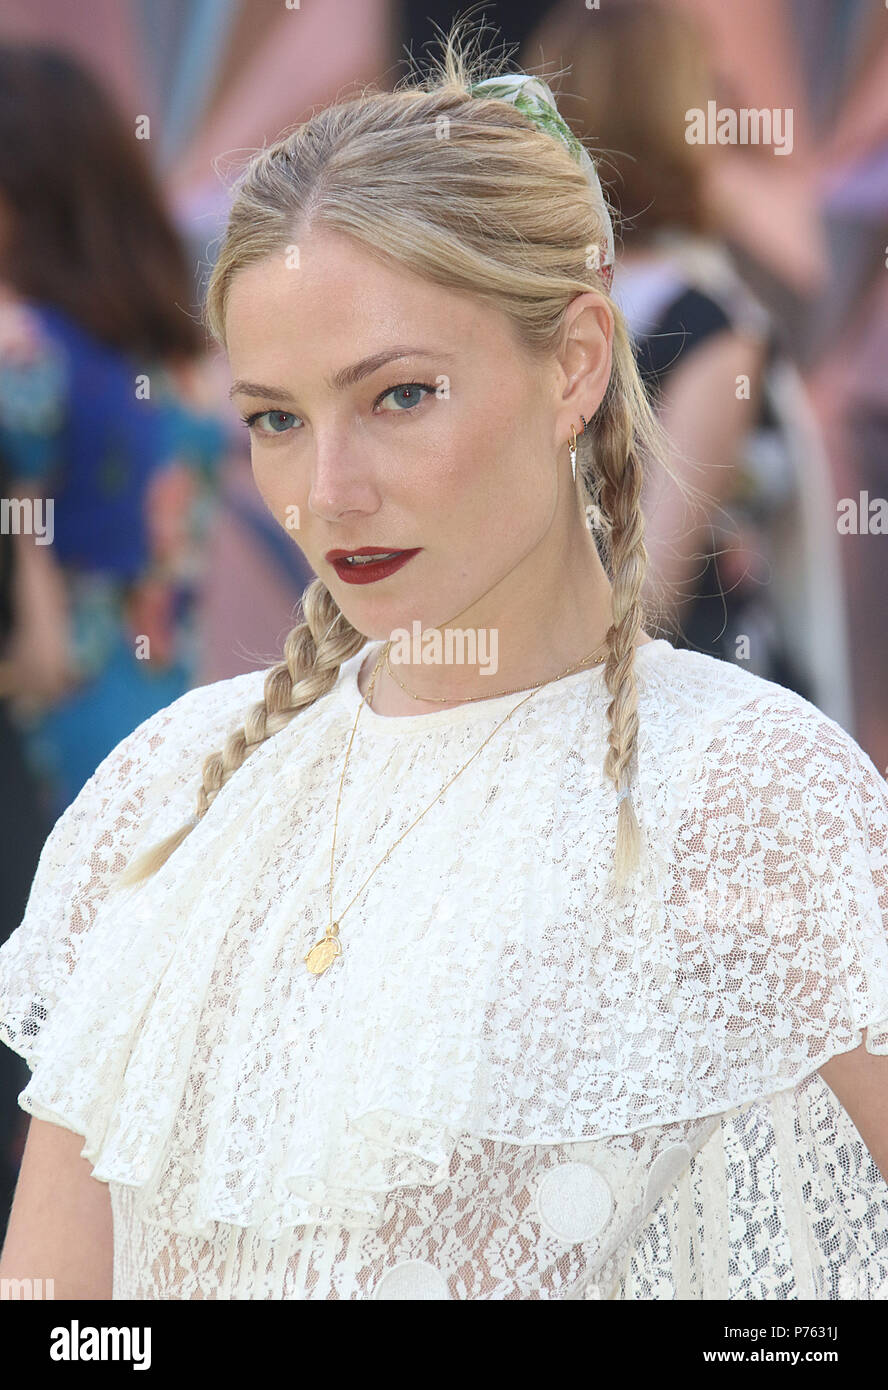 Jun 06, 2018 - Clara Paget attending Royal Academy Of Arts 250th Summer Exhibition Preview Party at Burlington House in London, England, UK - Stock Image